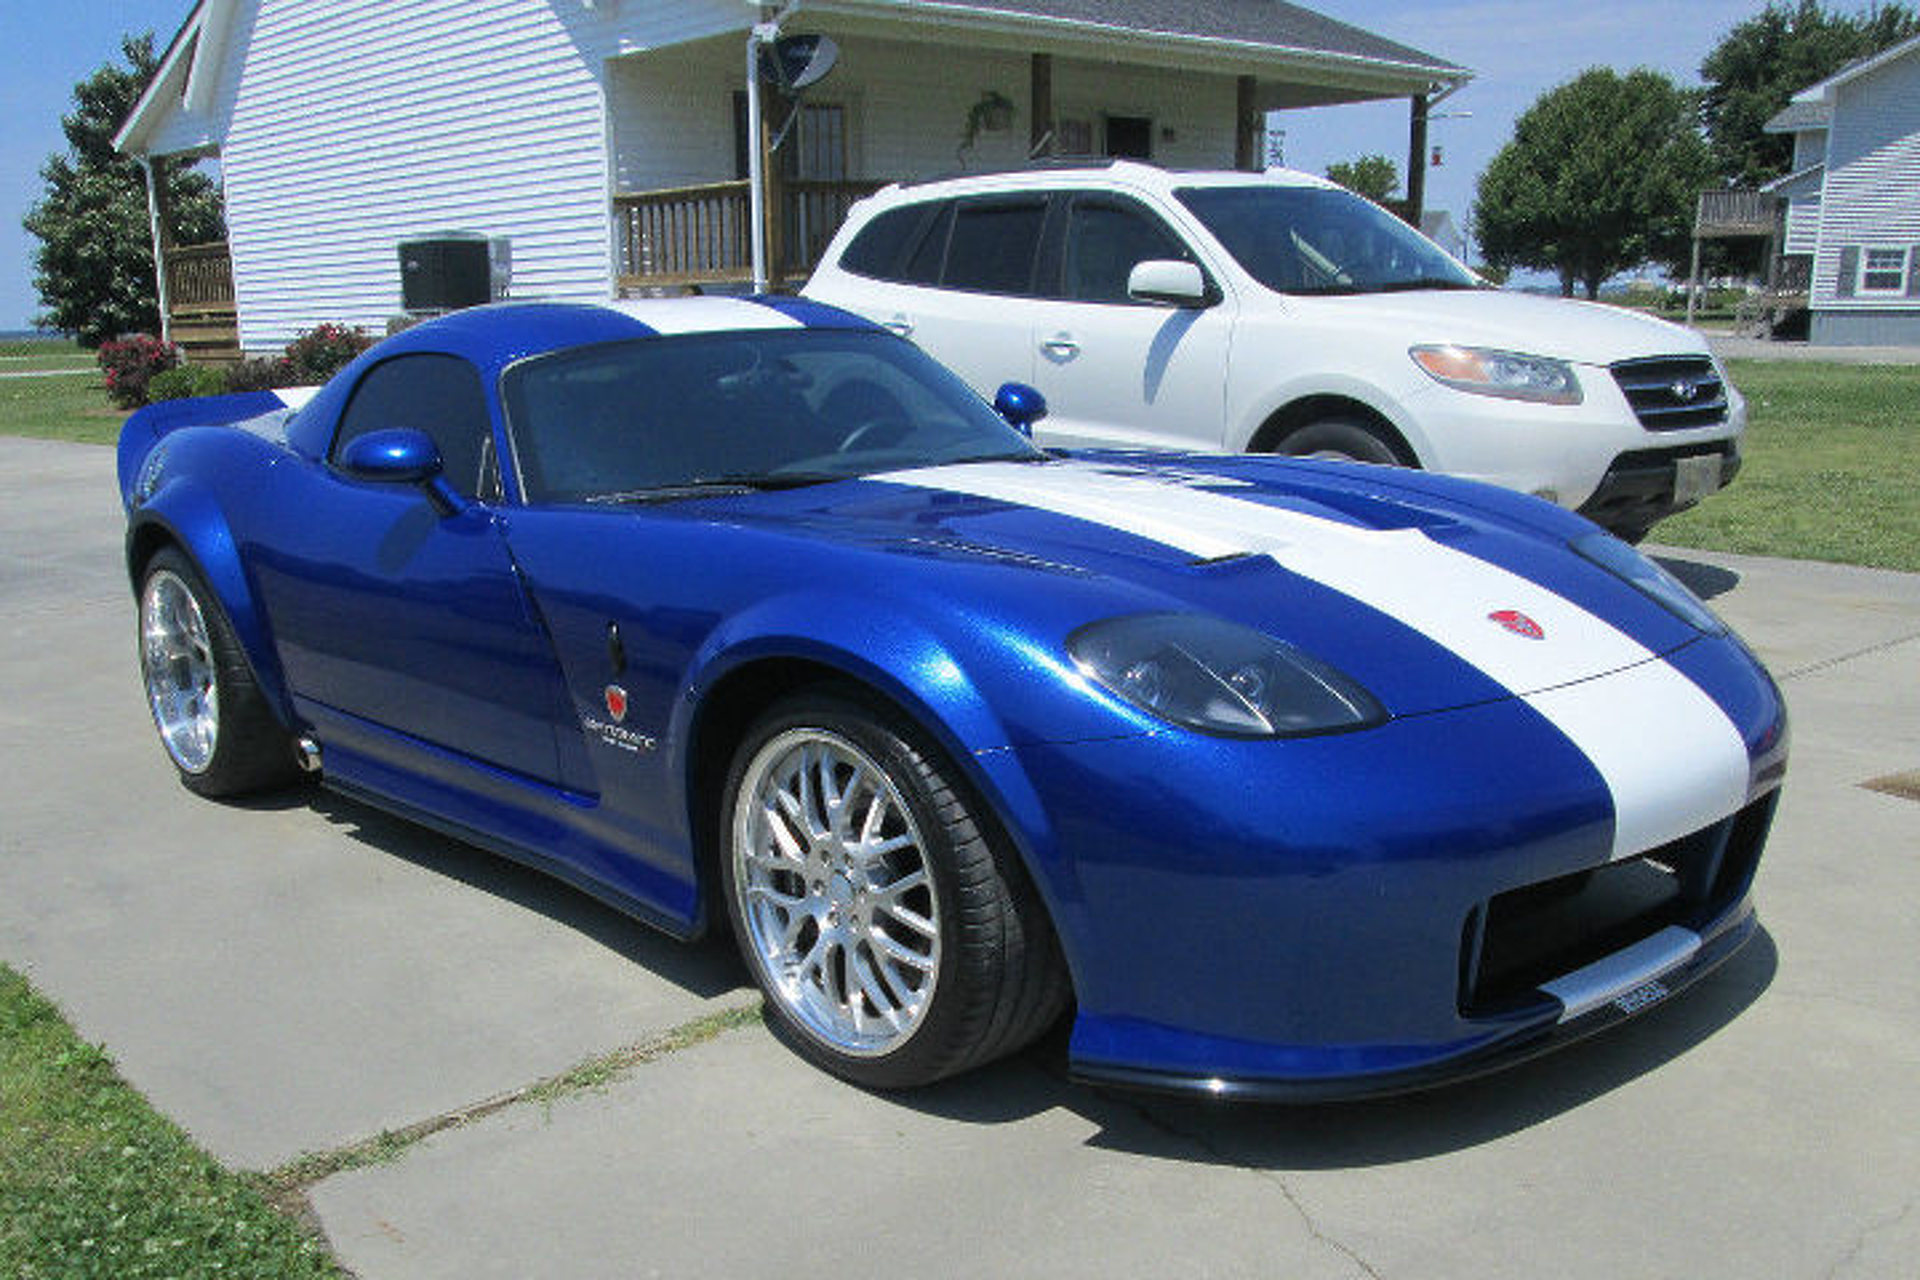 Get Your Real-Life, Viper-Based Banshee from 'Grand Theft Auto' for $170K